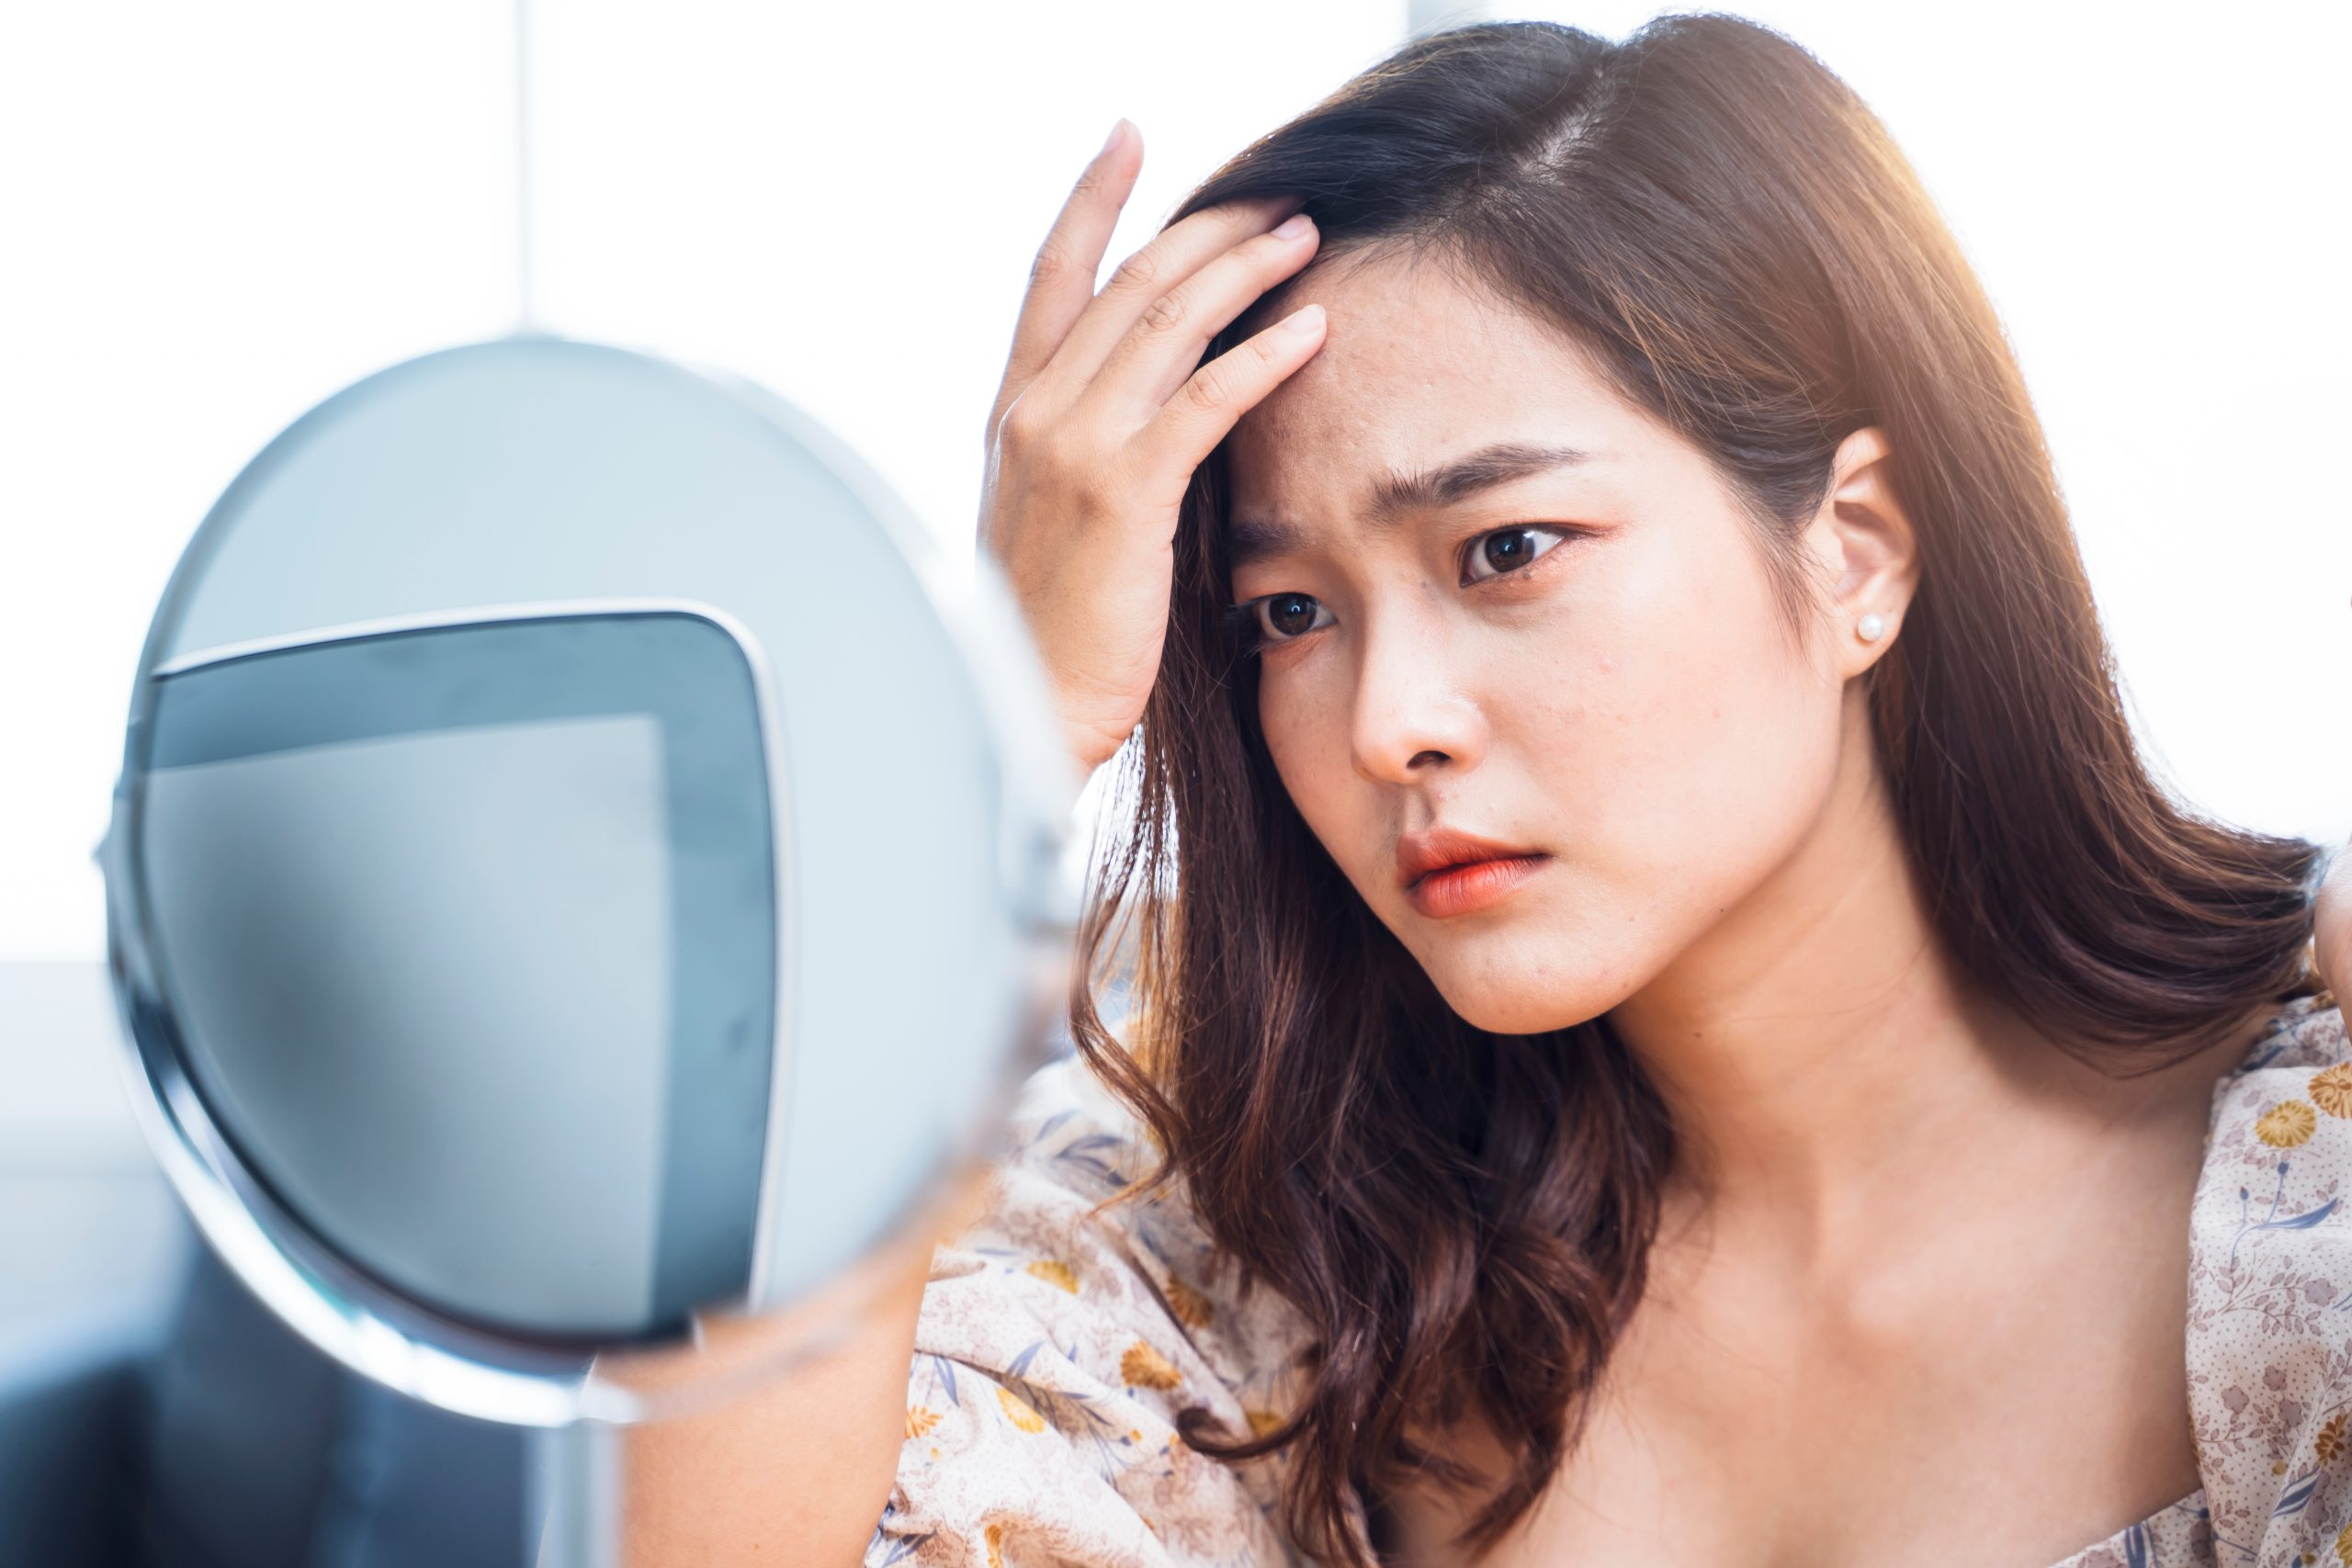 Woman looking at mirror with acne scar concern